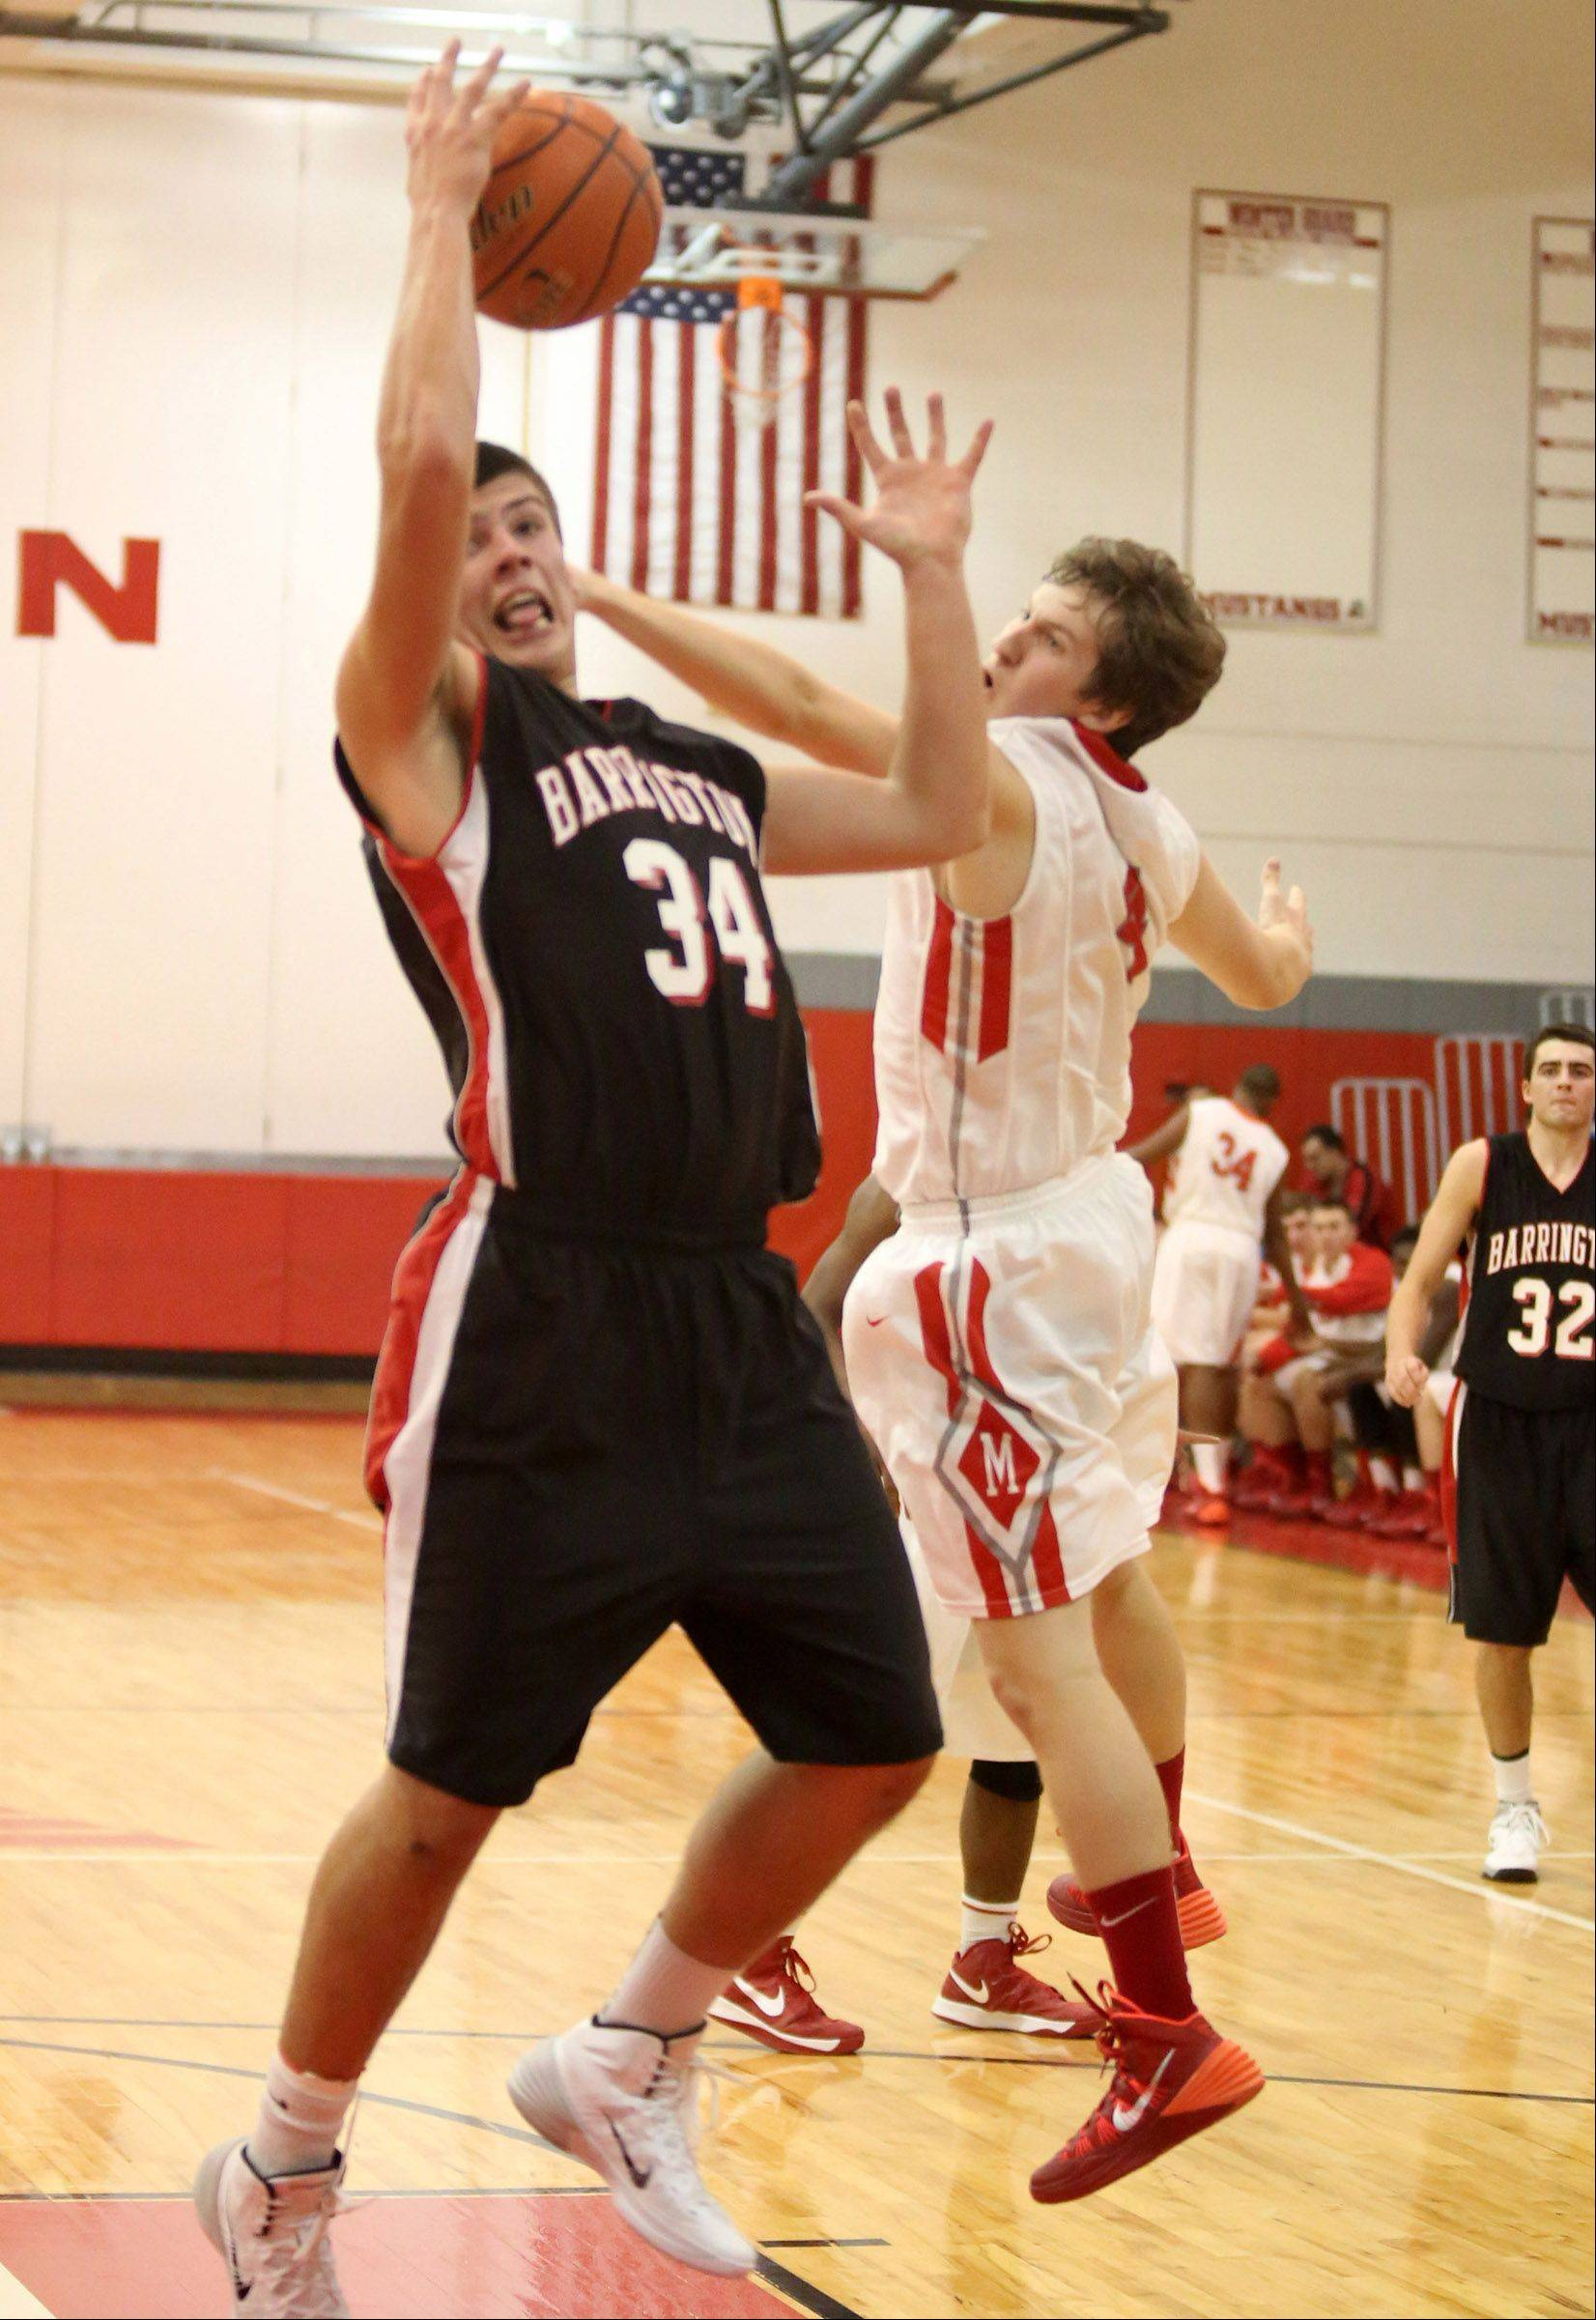 Barrington center Zach Bart pulls in an offensive rebound against Mundelein defender Sam Nelson in tournament play Friday at Mundelein.